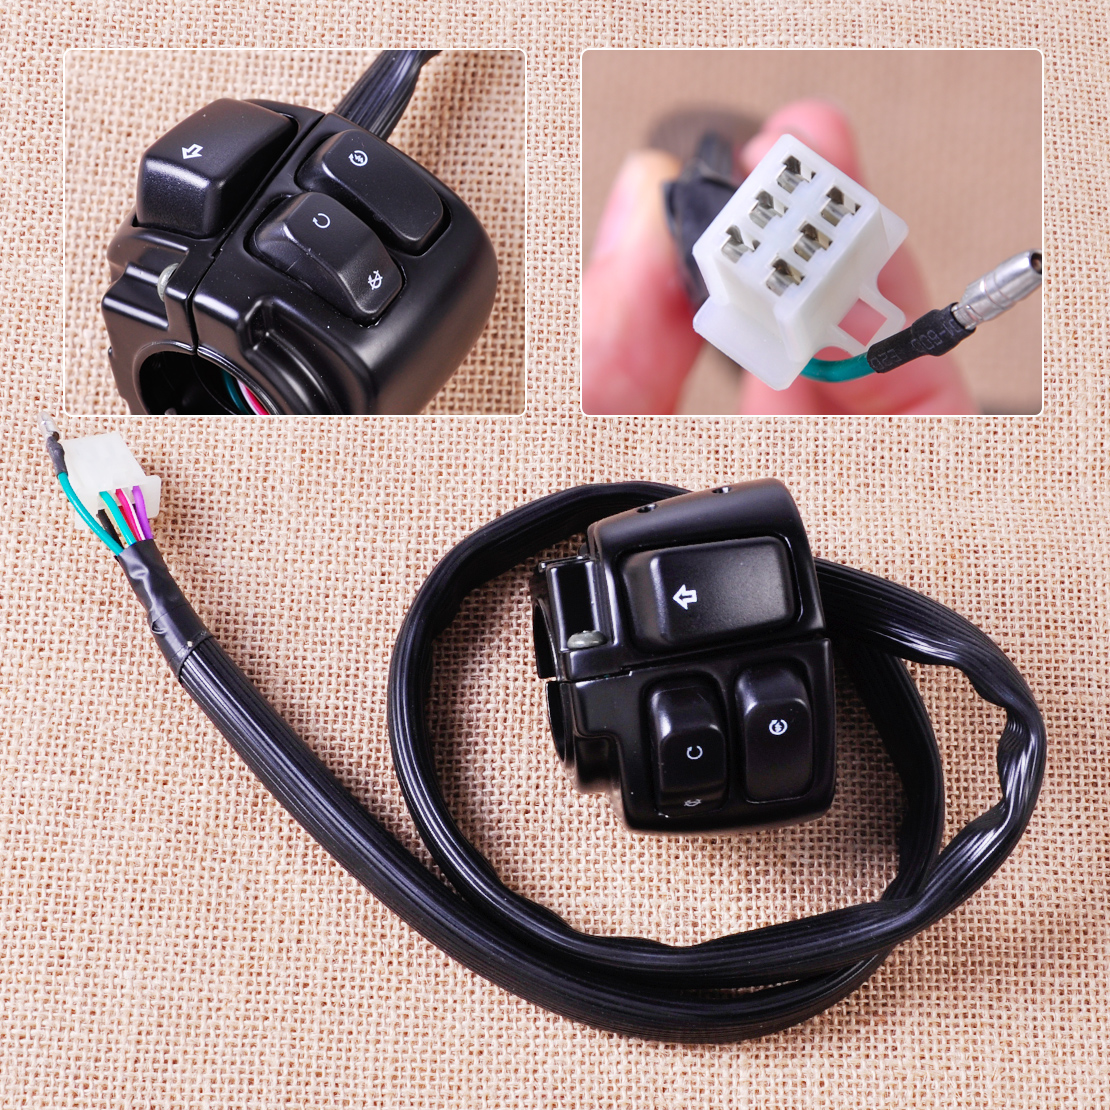 Citall Motorcycle 1 U0026quot  Handlebar Ignition Turn Signal Switch Wiring Harness For Harley Softail